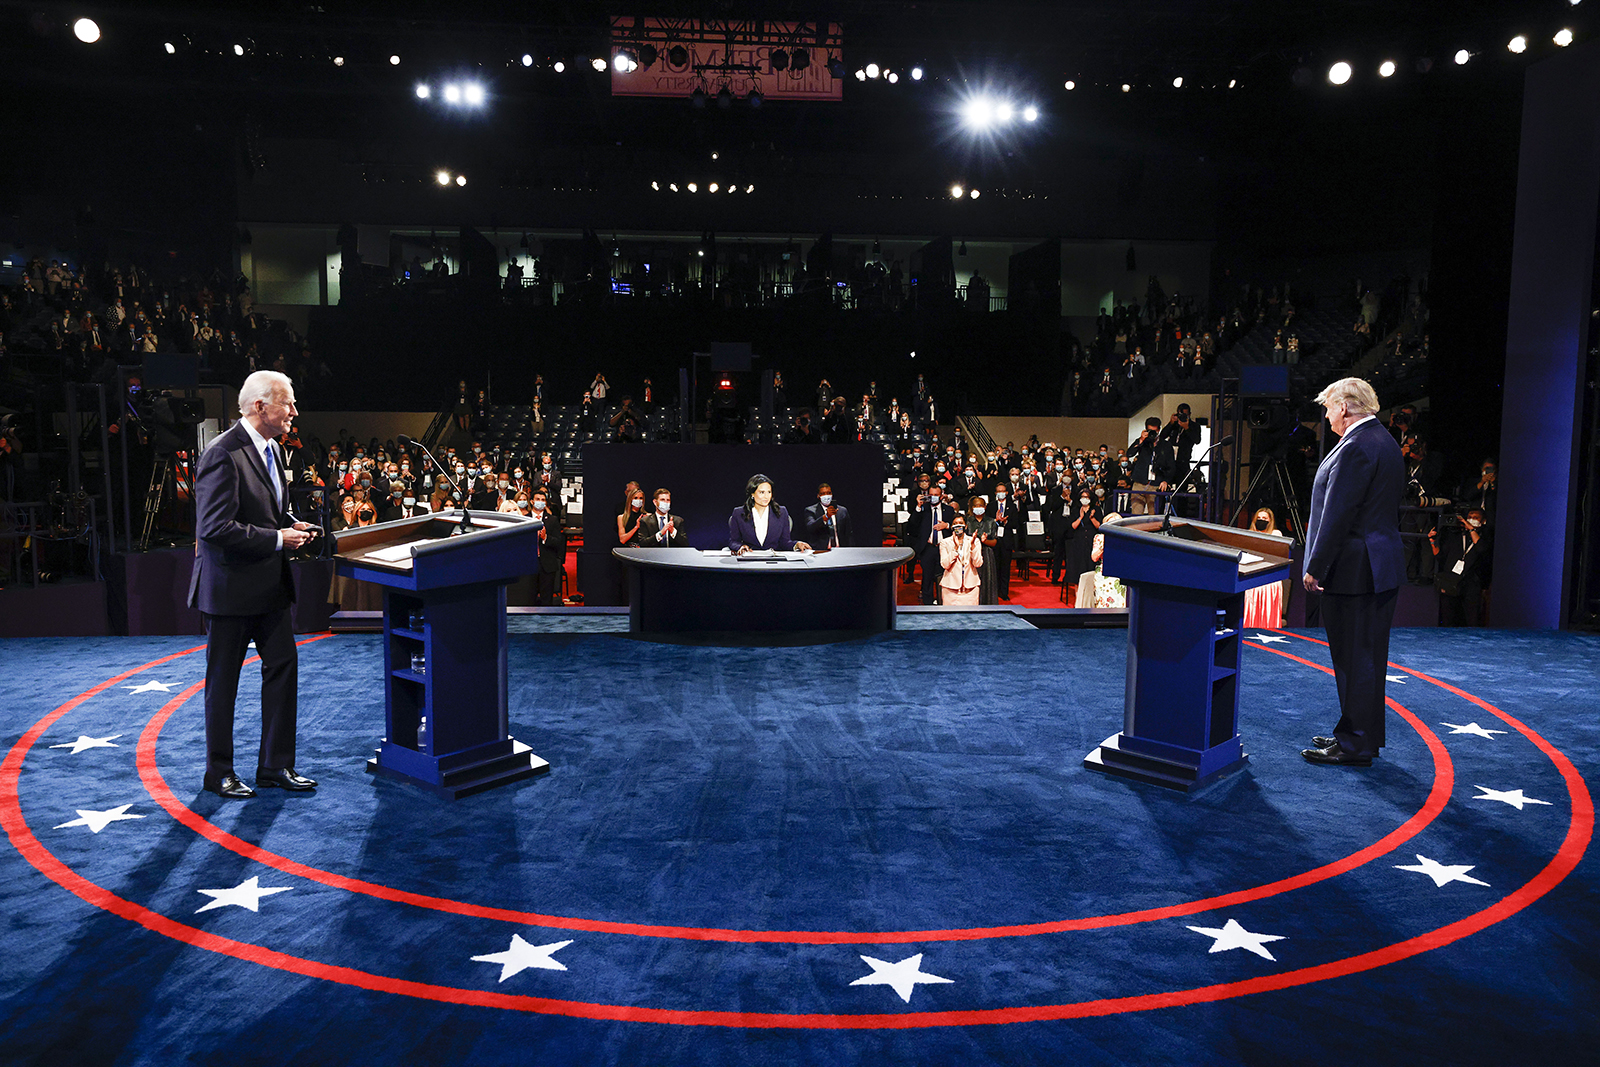 Final 2020 presidential debate fact check and news coverage